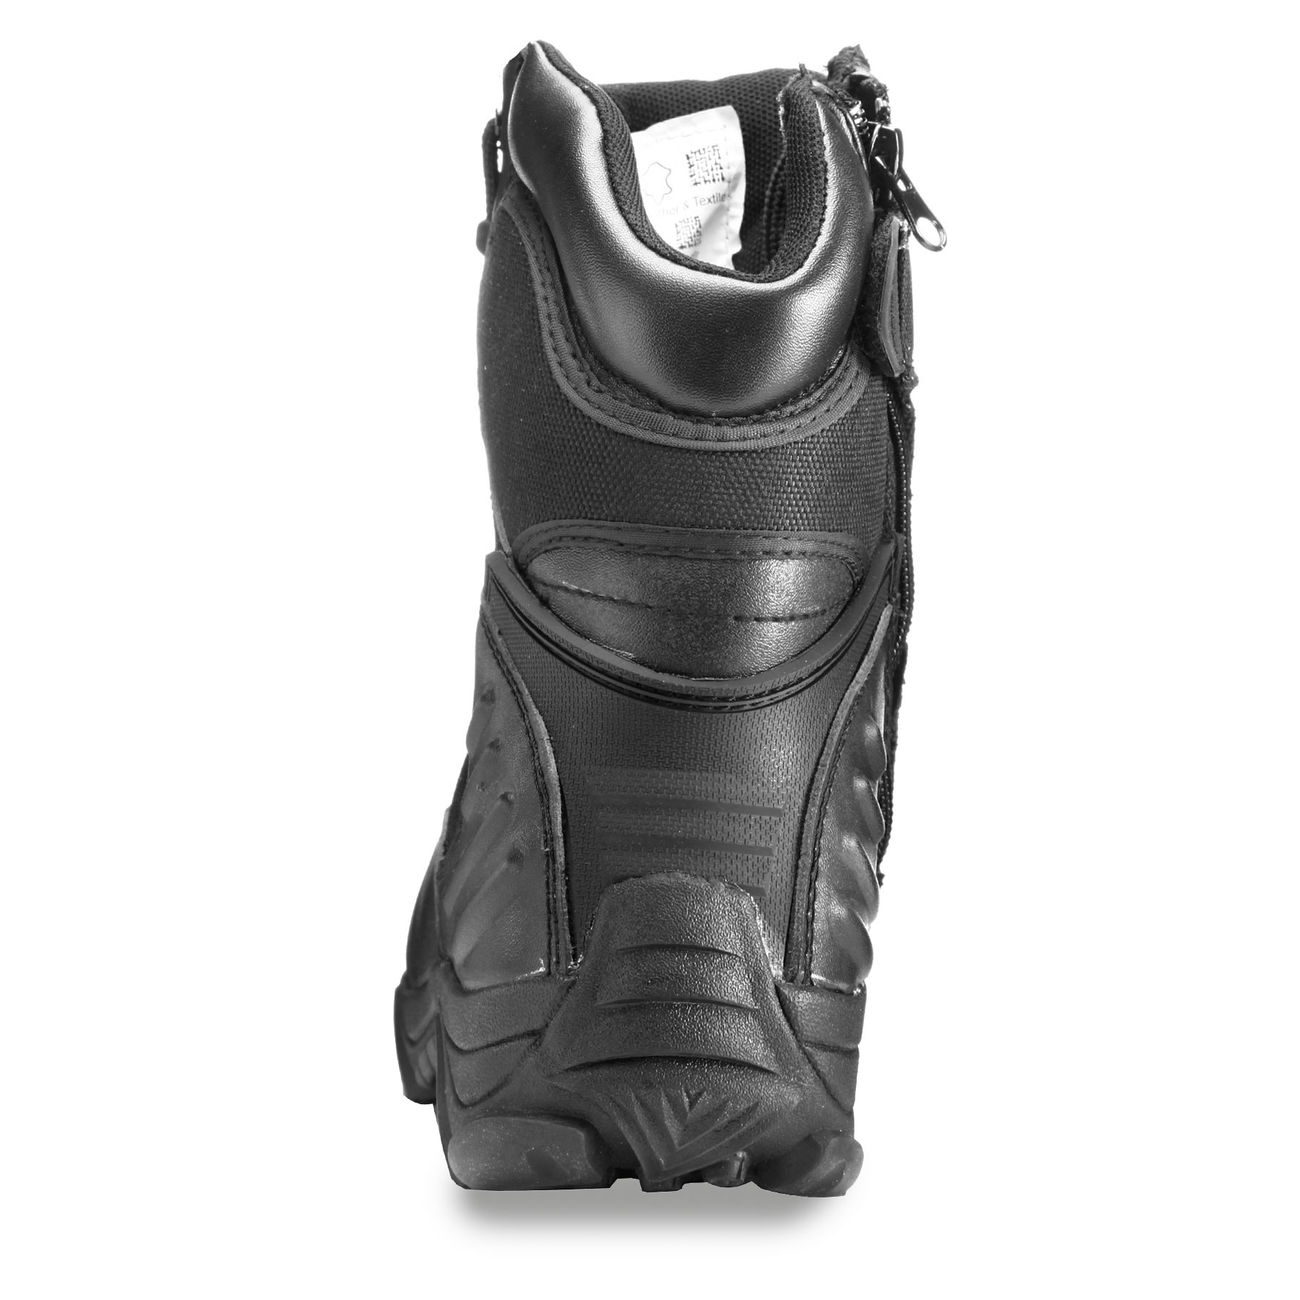 McAllister Stiefel Delta Force Tactical Outdoor Boots schwarz 2